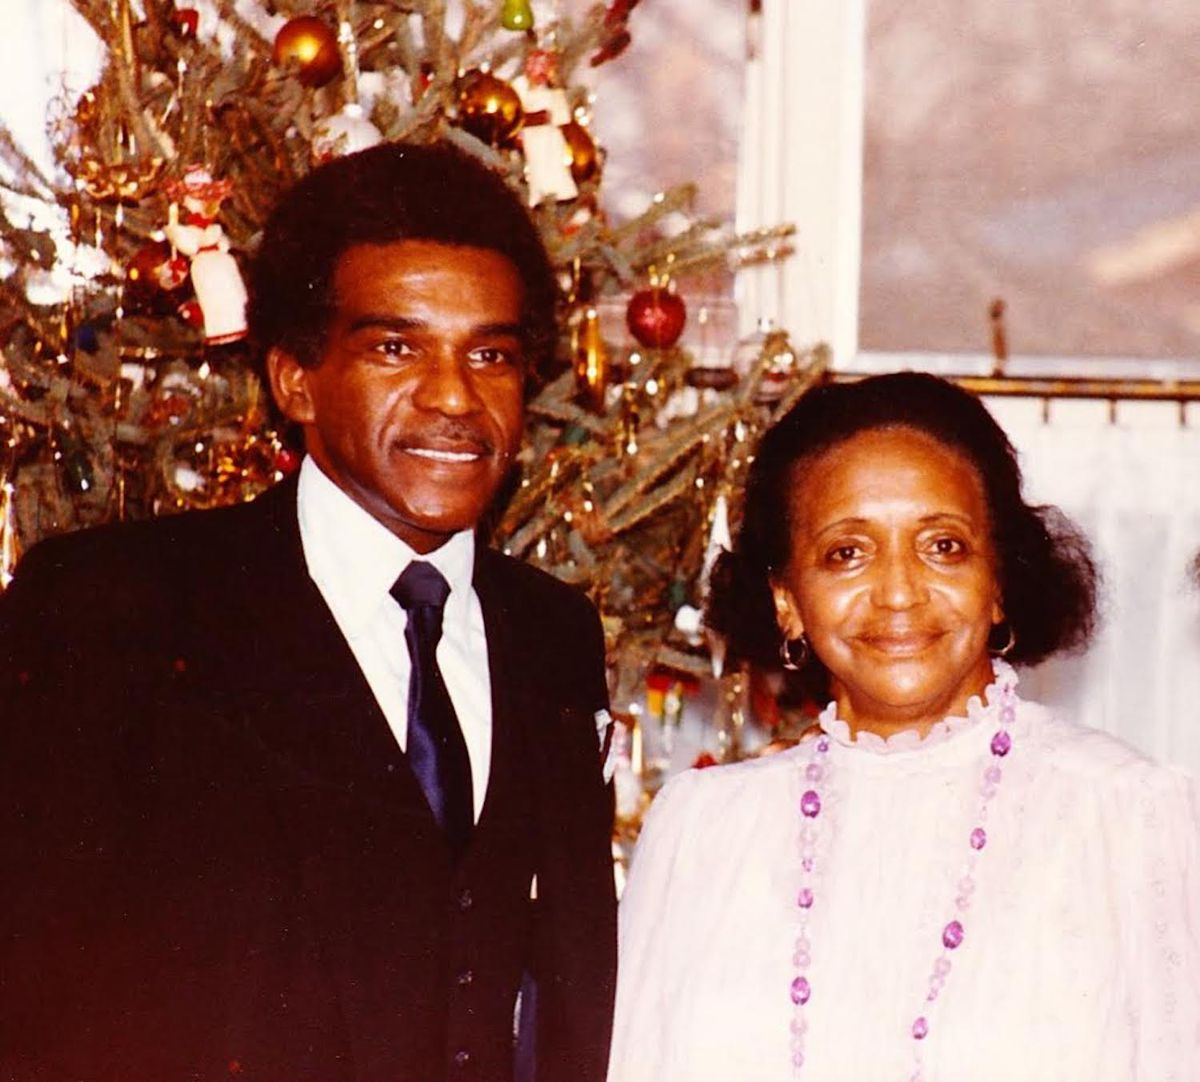 Walter McFall with his first scientific role model, his mother Theresa Larcena McFall.